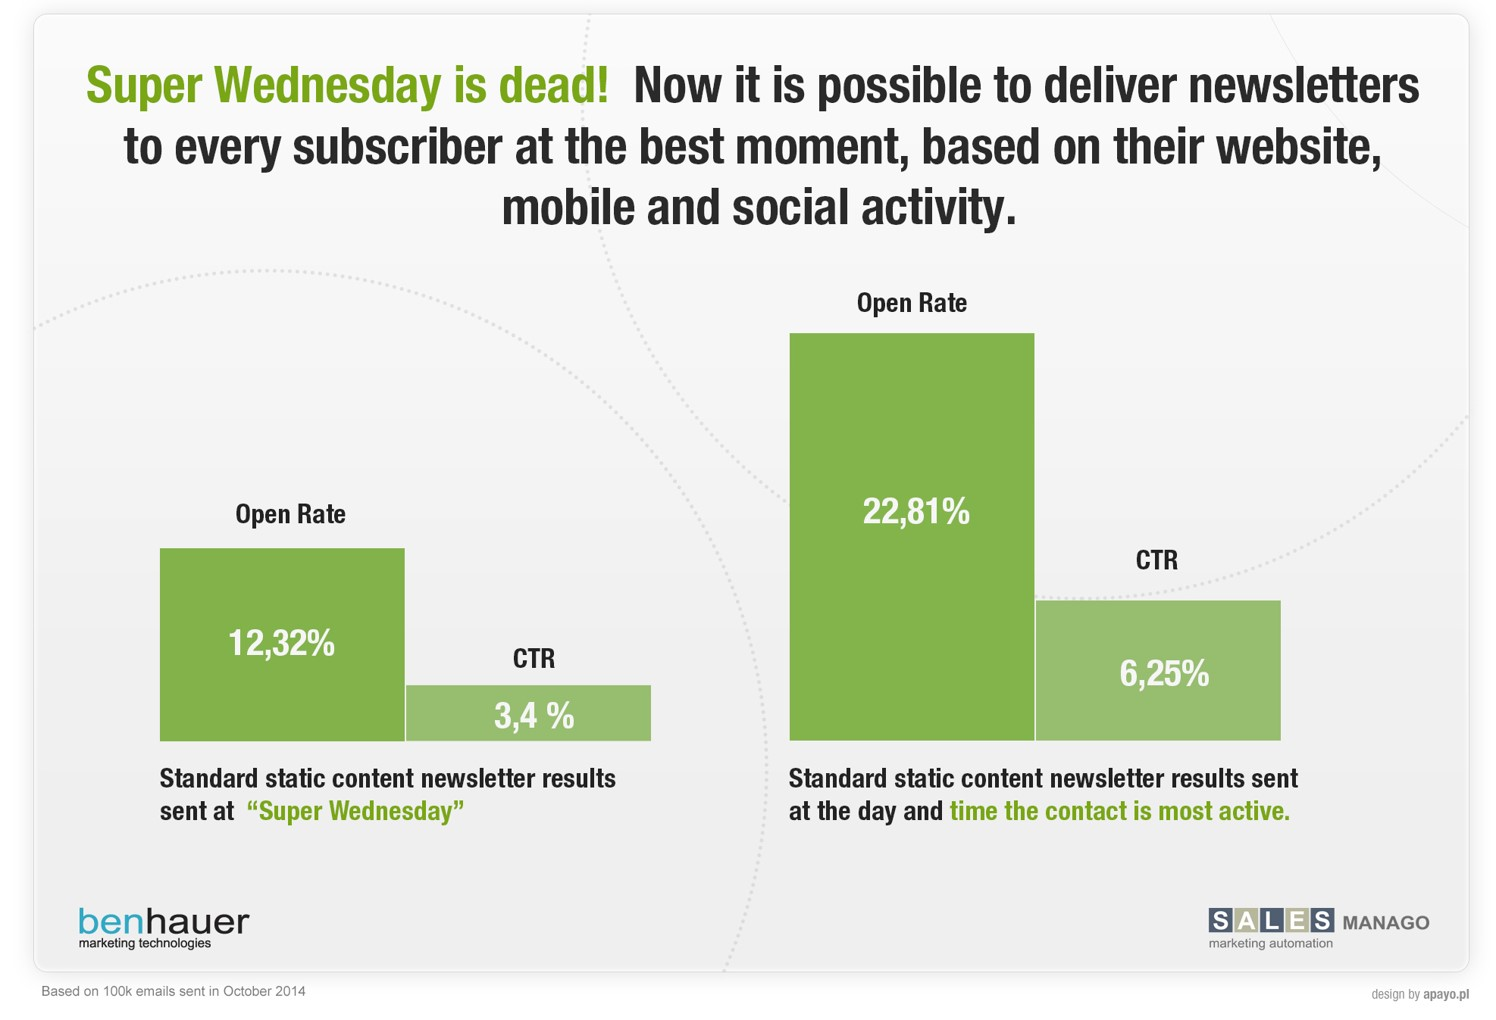 Super Wednesday is dead